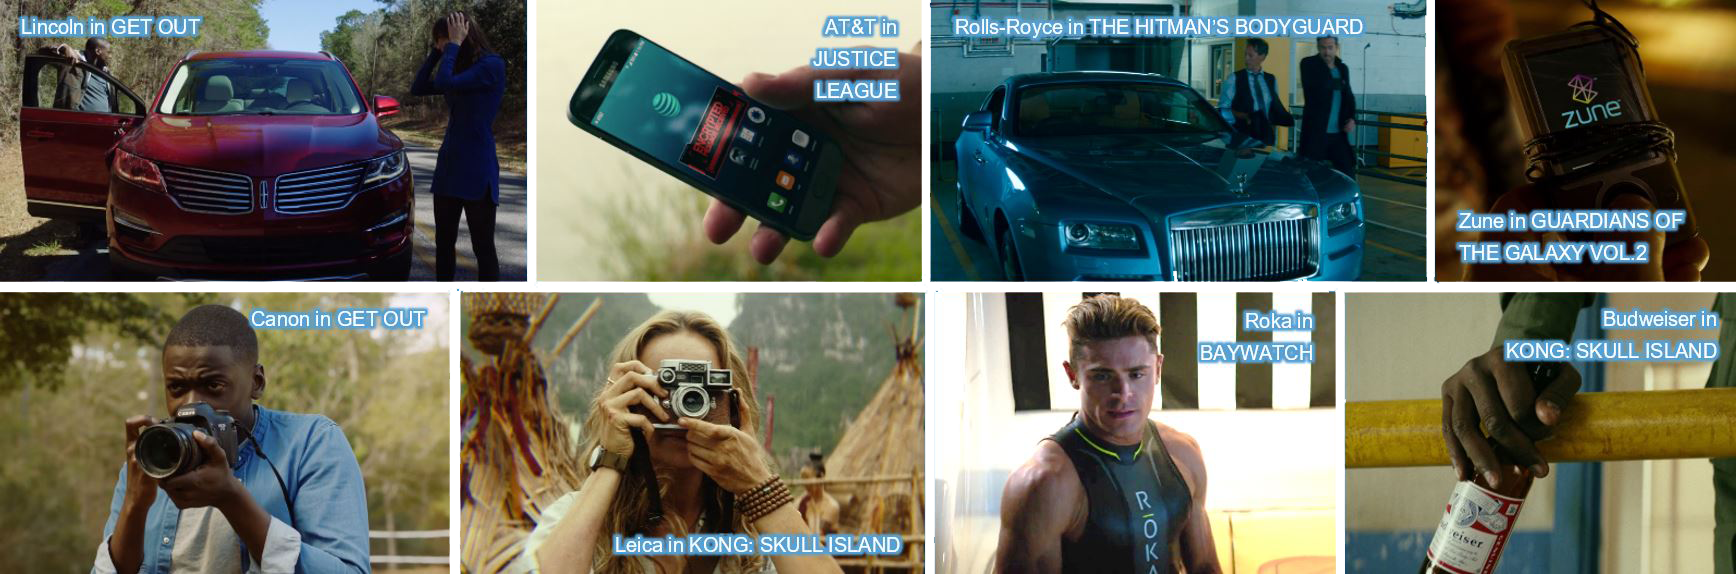 concave brand tracking product placement lincoln get out at&T justice league rolls-royce the hitman's bodyguard zune guardians of the galaxy canon get out leica camera kong skull island roka baywatch